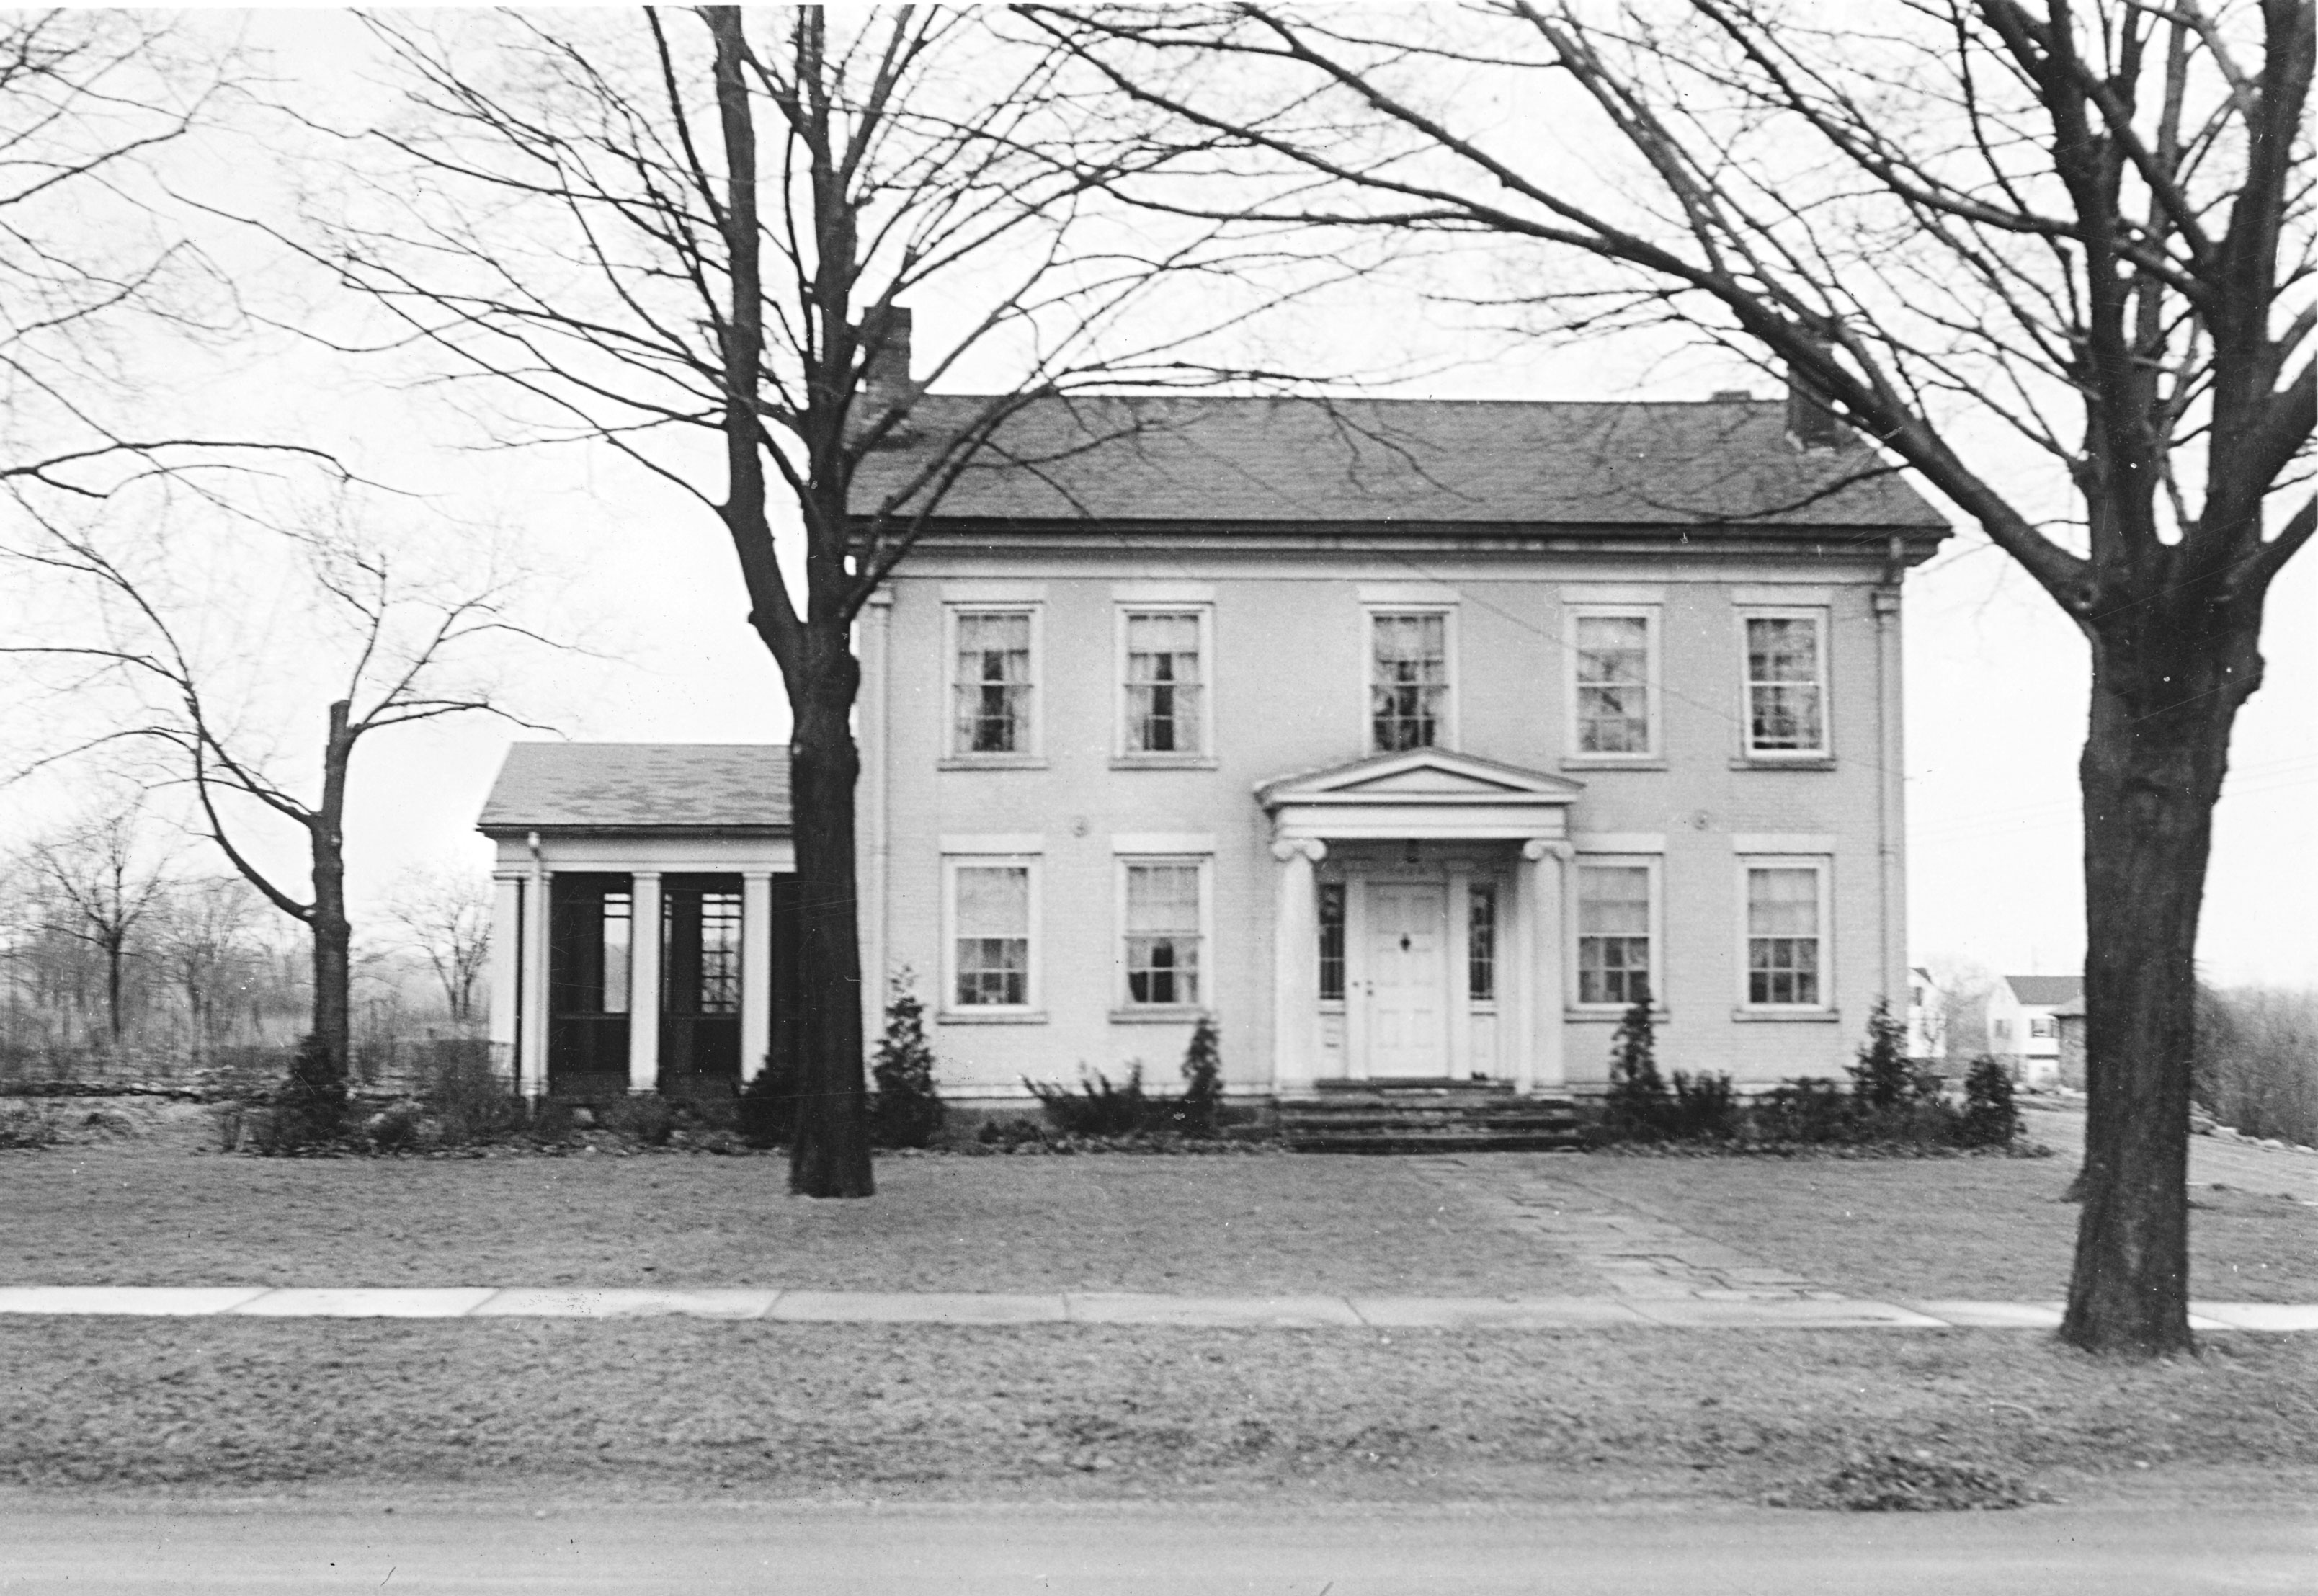 Rev. Guy Beckley House, 1425 Pontiac Trail, photo 1930s image